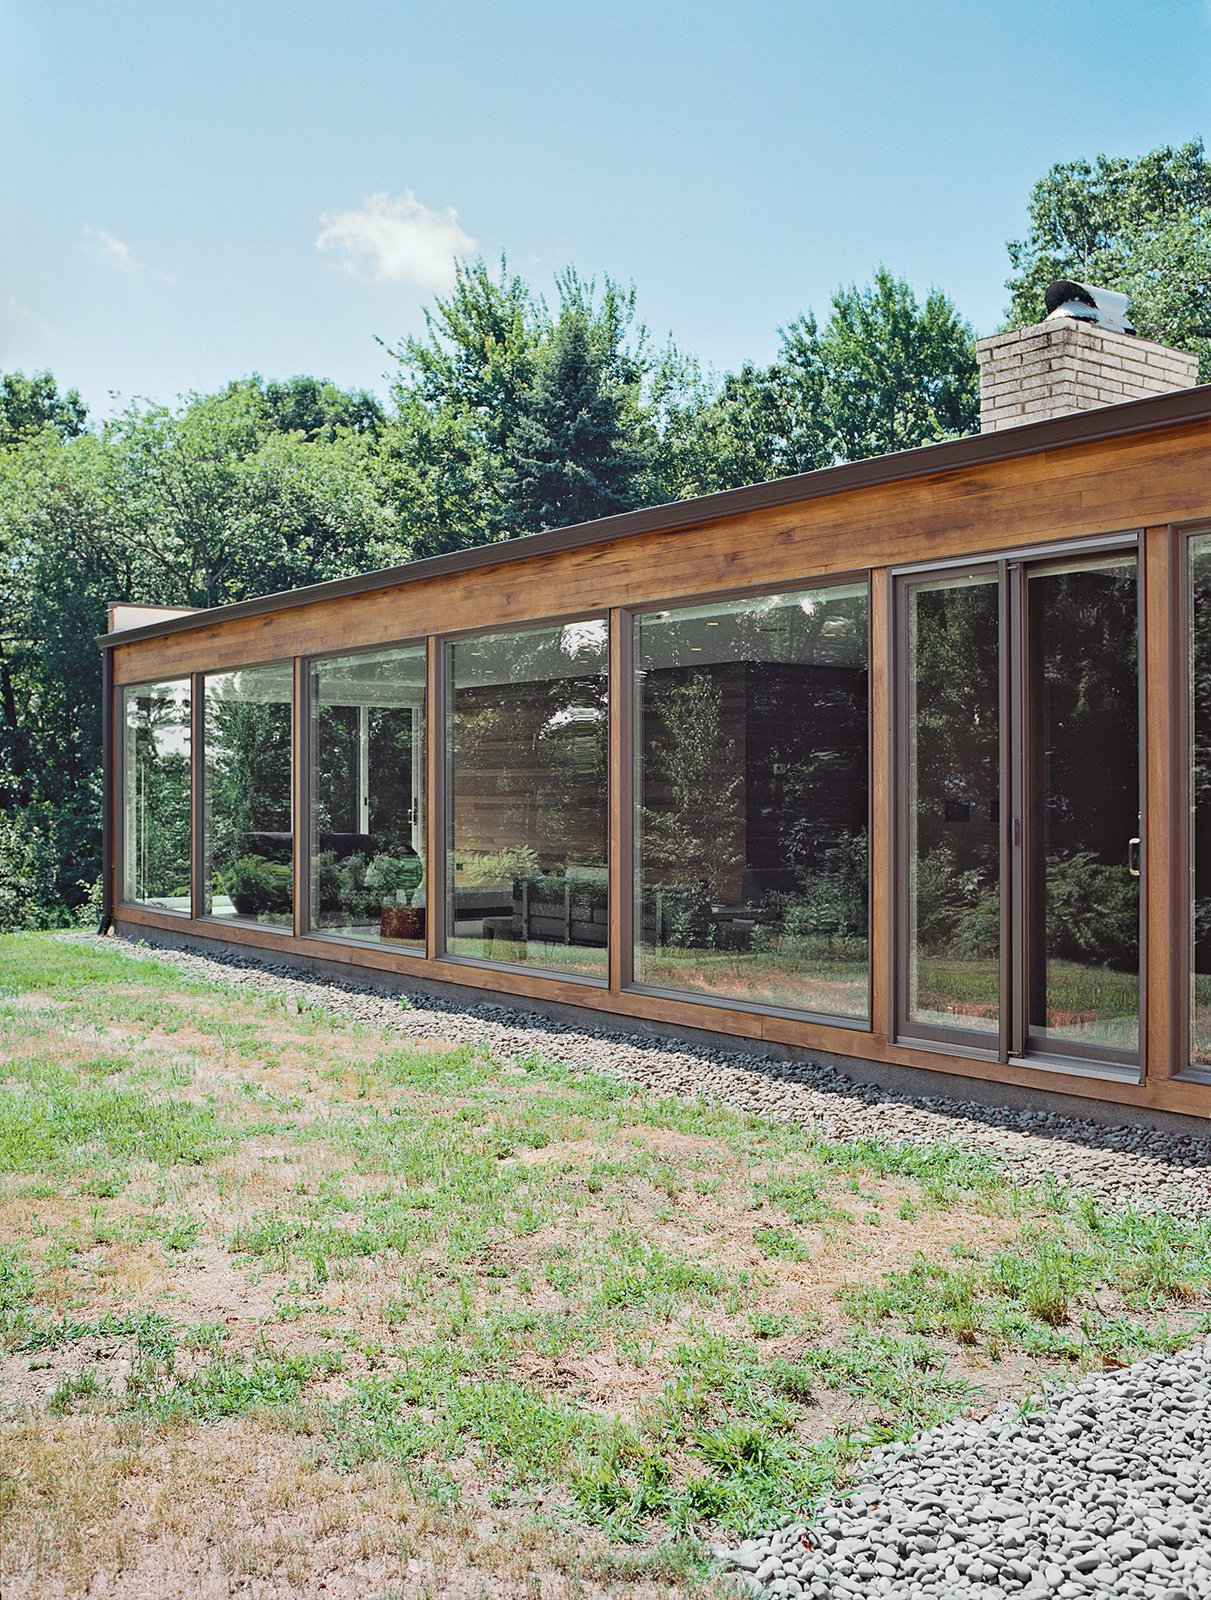 He added floor-to-ceiling windows by Andersen, which allow low winter sunlight to warm the interior in colder months. Tagged: Exterior, Mid-Century Building Type, Flat RoofLine, Wood Siding Material, and House.  Renovations from The Midcentury Spirit is Alive and Well in This Hudson Valley Escape